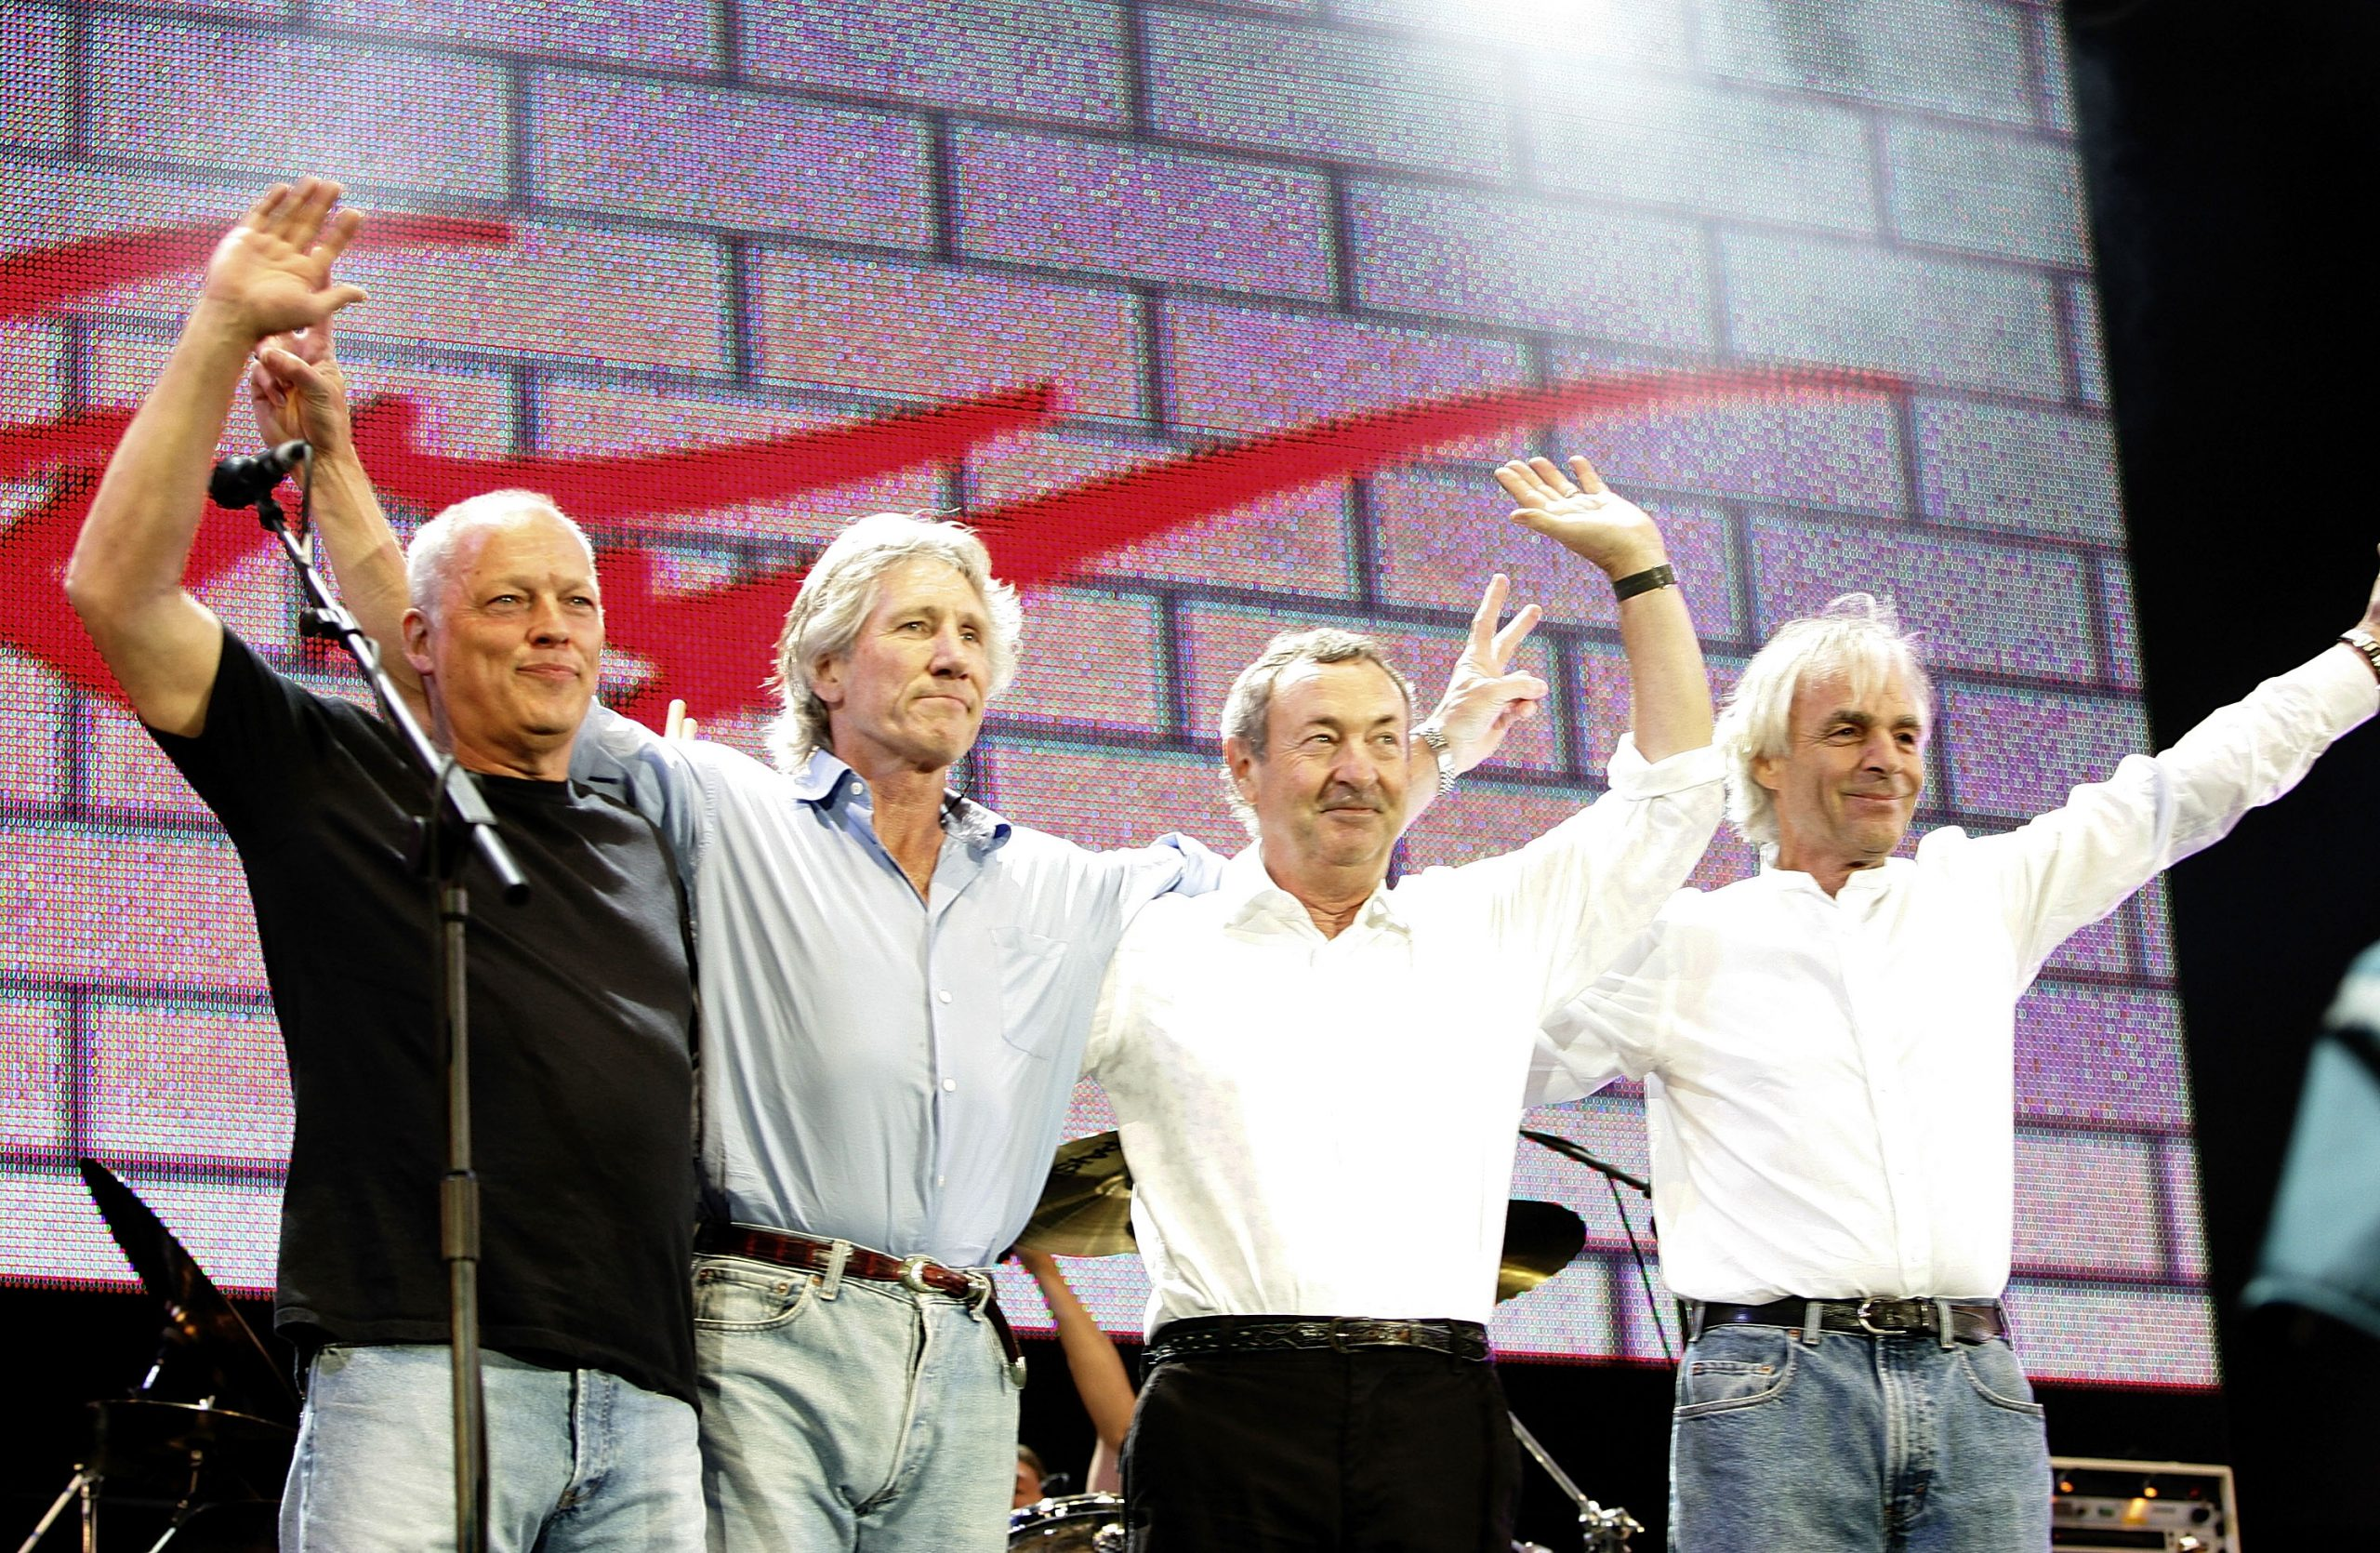 pink-floyd-roger-waters-david-gilmour